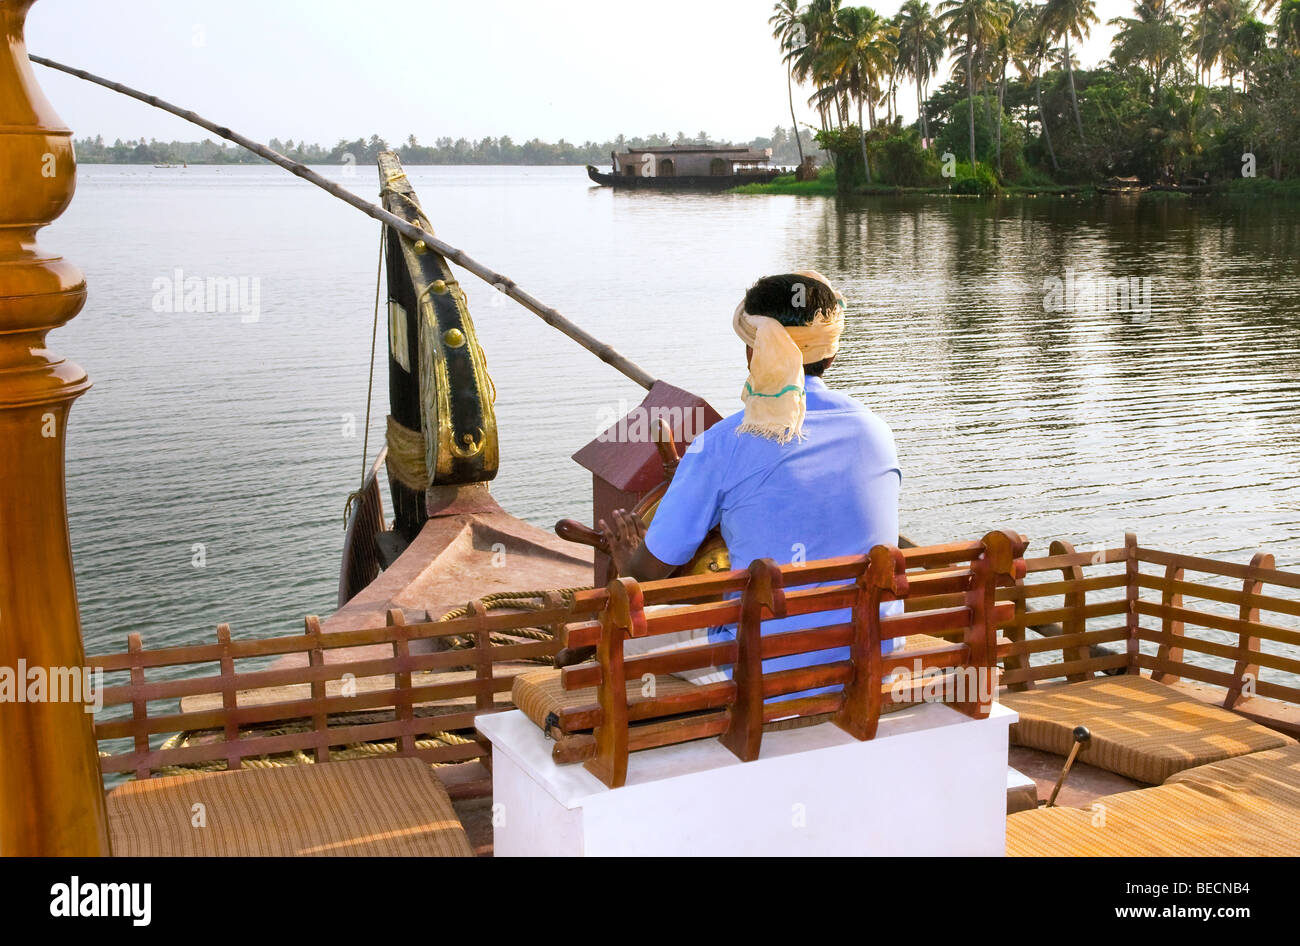 Kettuvallam,house boat in the Kerala Backwaters merandering along at  Lake  Vembanad,South India - Stock Image